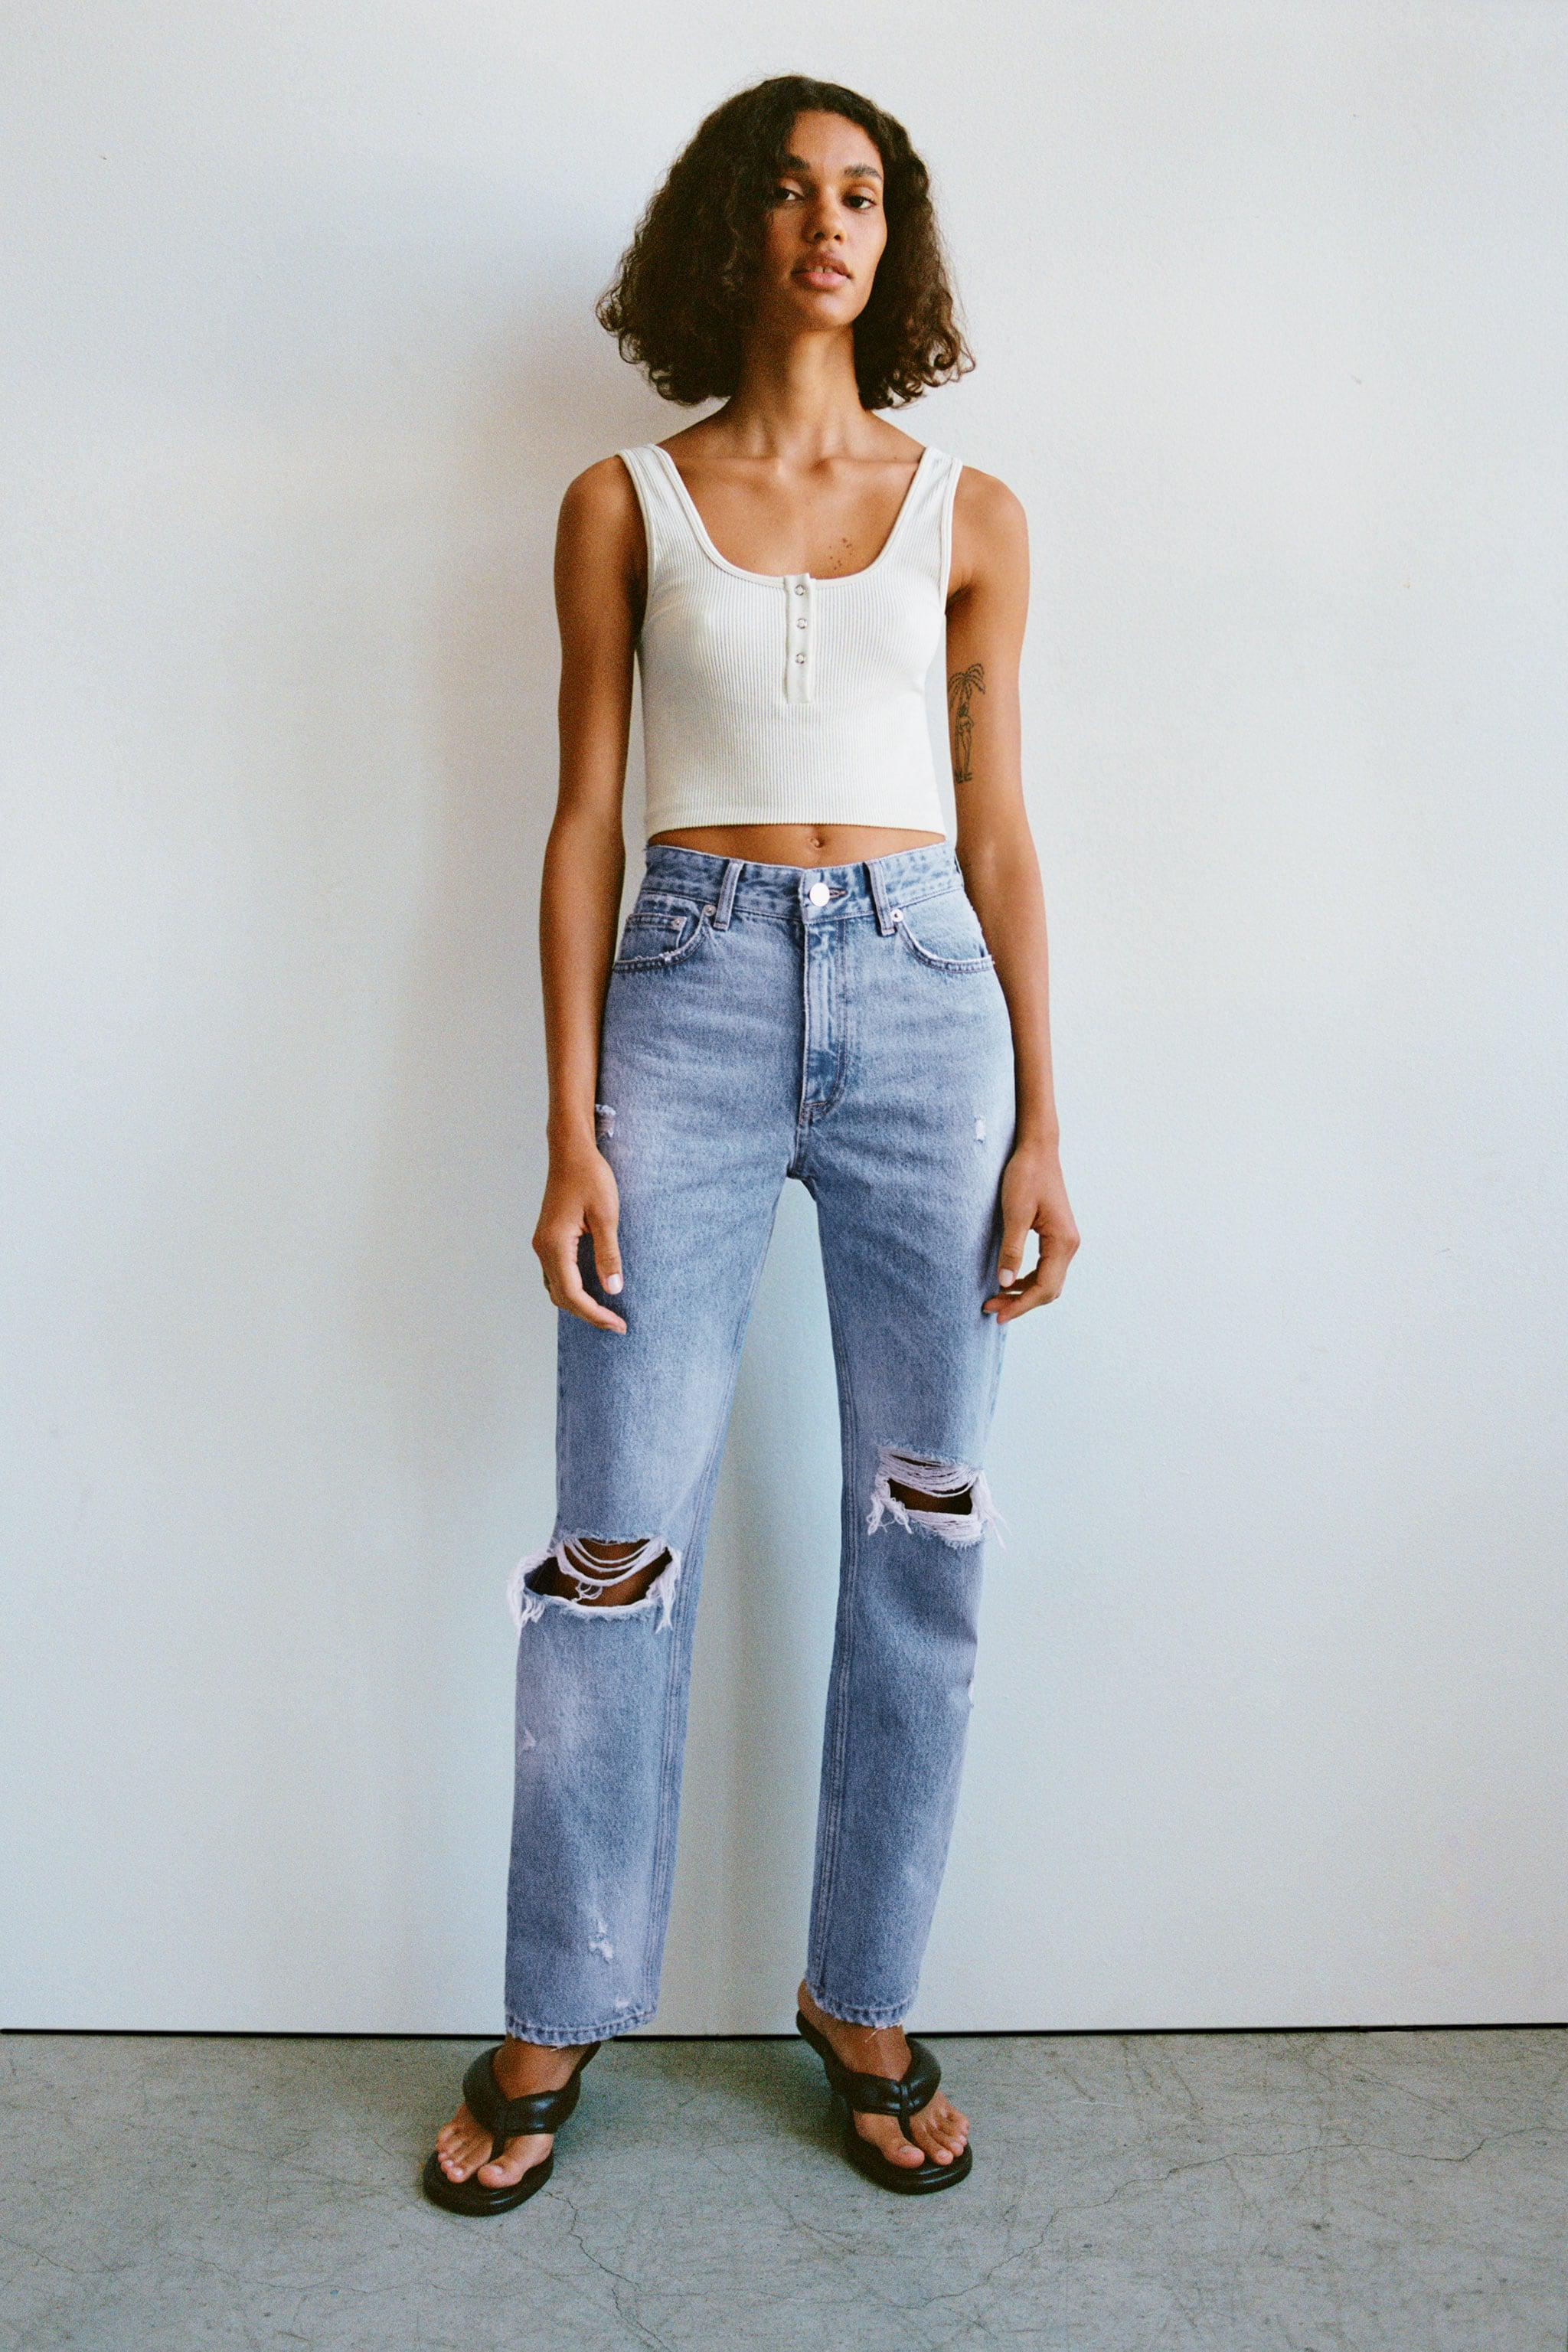 RIPPED STAIN DYE JEANS 1